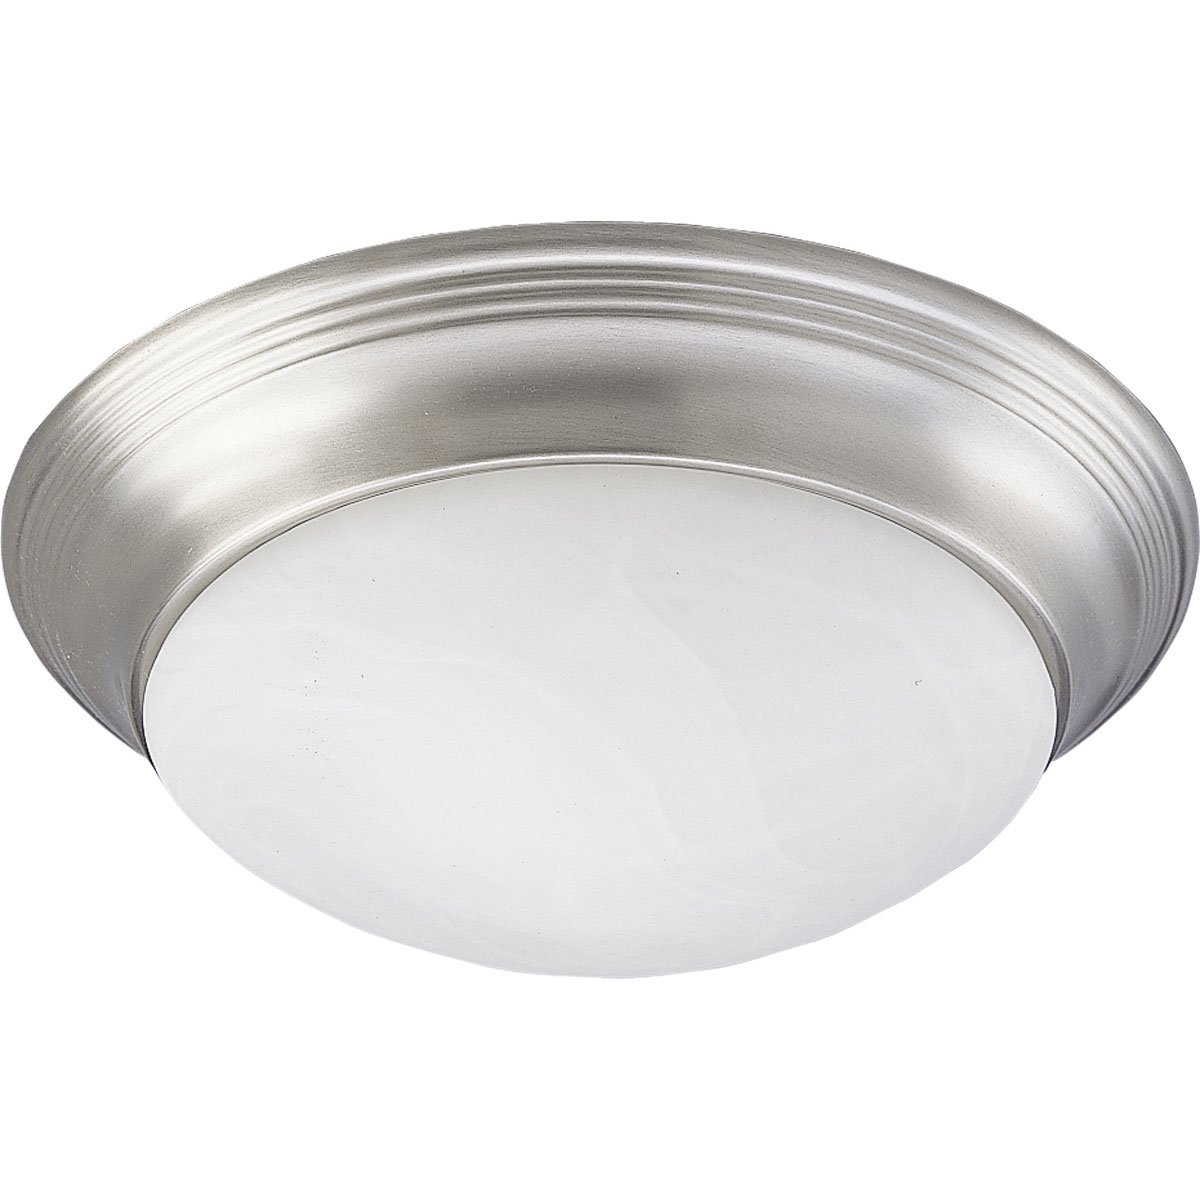 Progress Lighting P3688-09 Alabaster Glass One-Light Close-To-Ceiling Brushed Nickel 11-1/2  x 3-3/4  - - Amazon.com  sc 1 st  Amazon.com & Progress Lighting P3688-09 Alabaster Glass One-Light Close-To ...